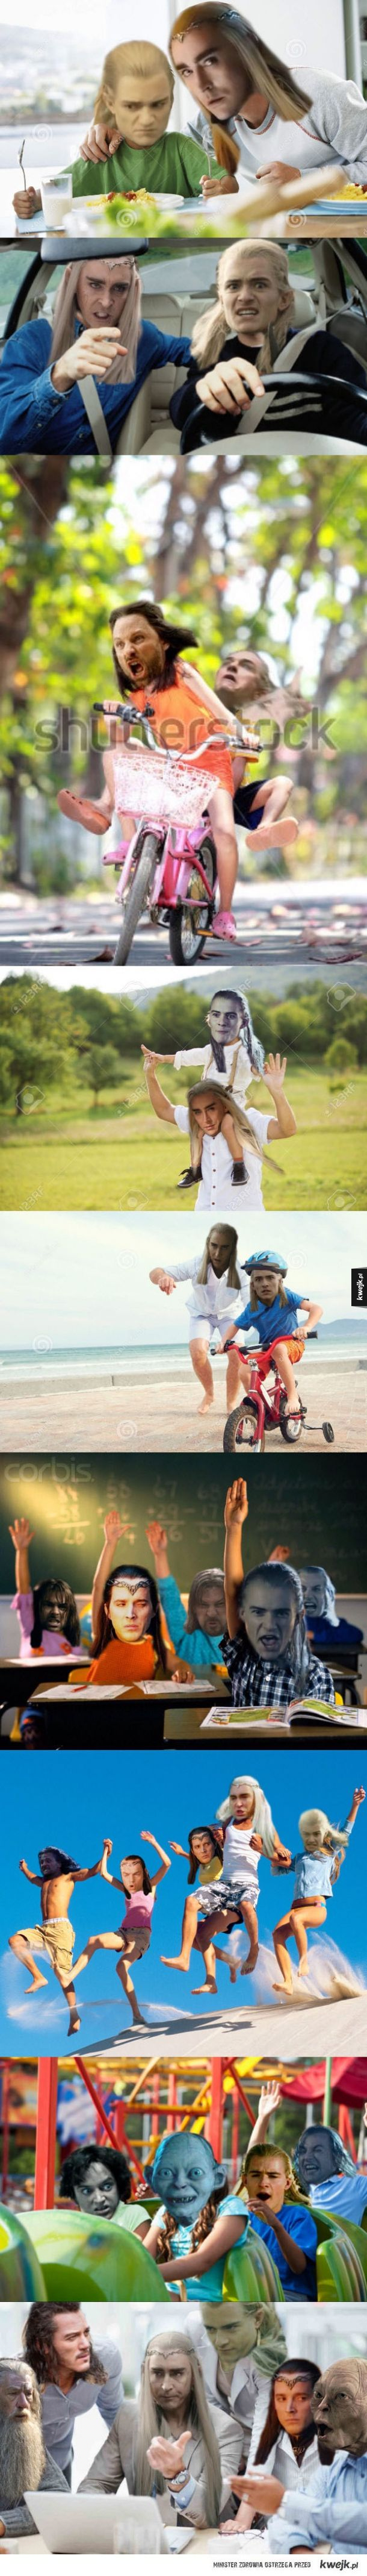 You don't understand the love I have for these pictures. Bike riding with Aragorn is my favorite